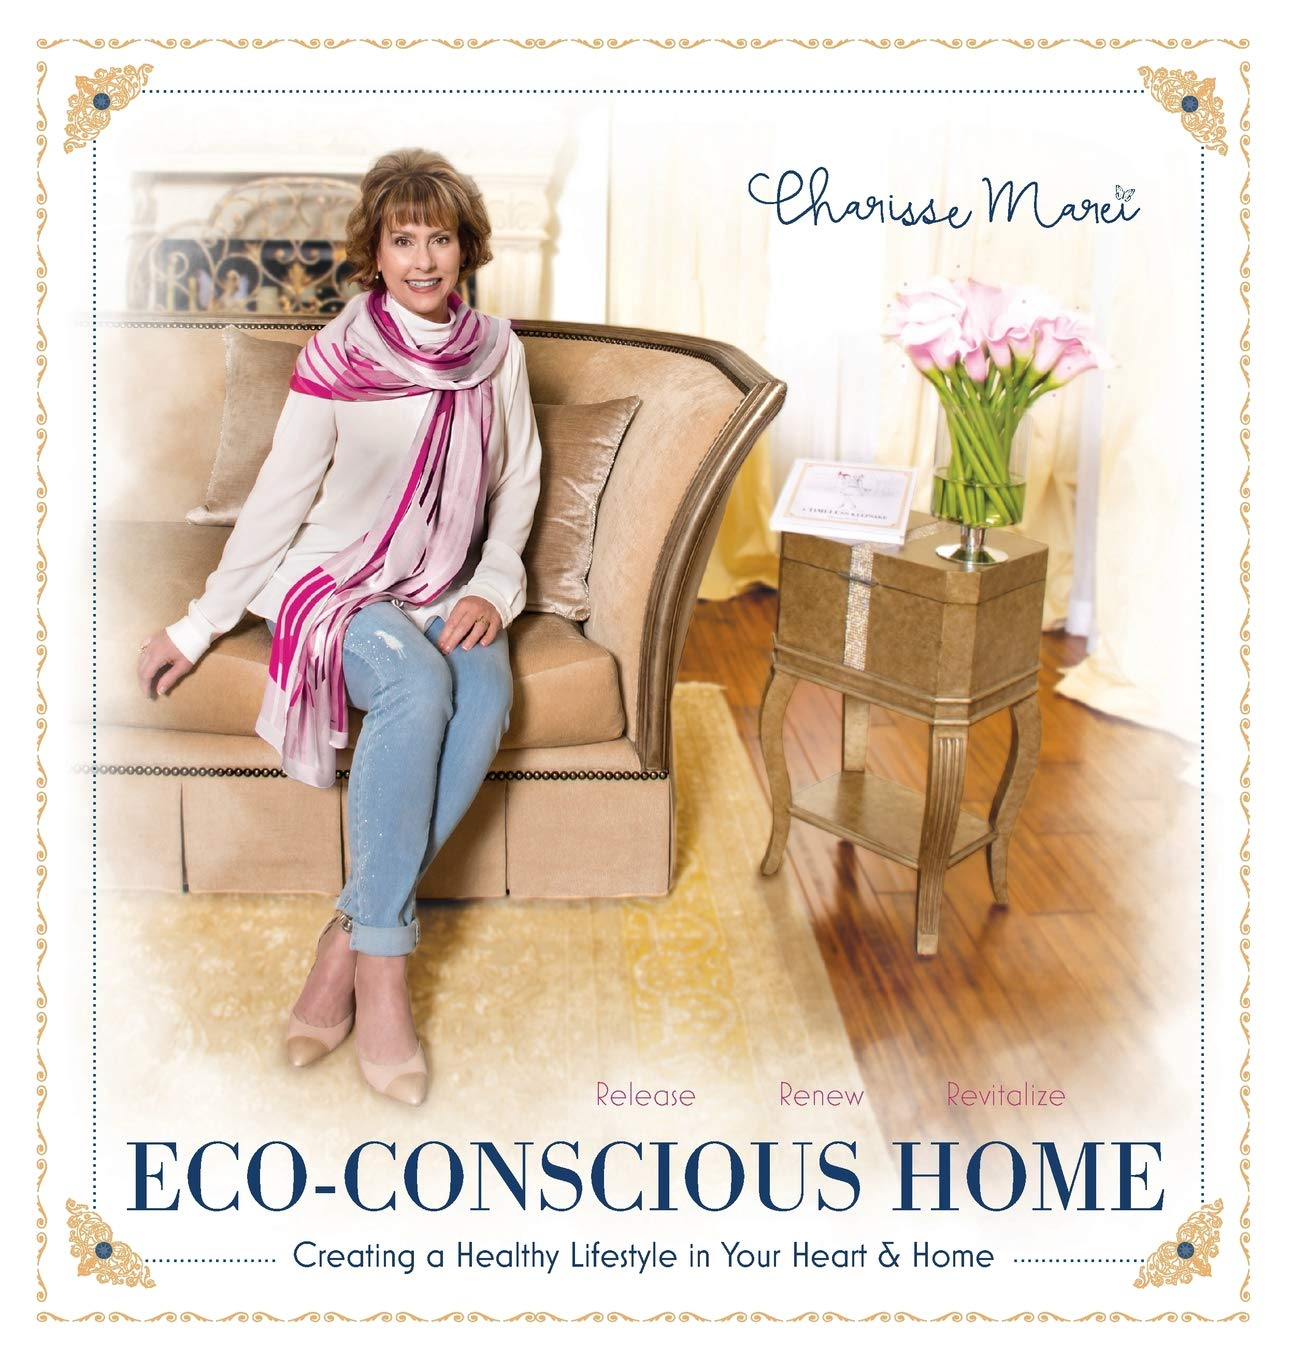 Eco-Conscious Home: Creating A Healthy Lifestyle in